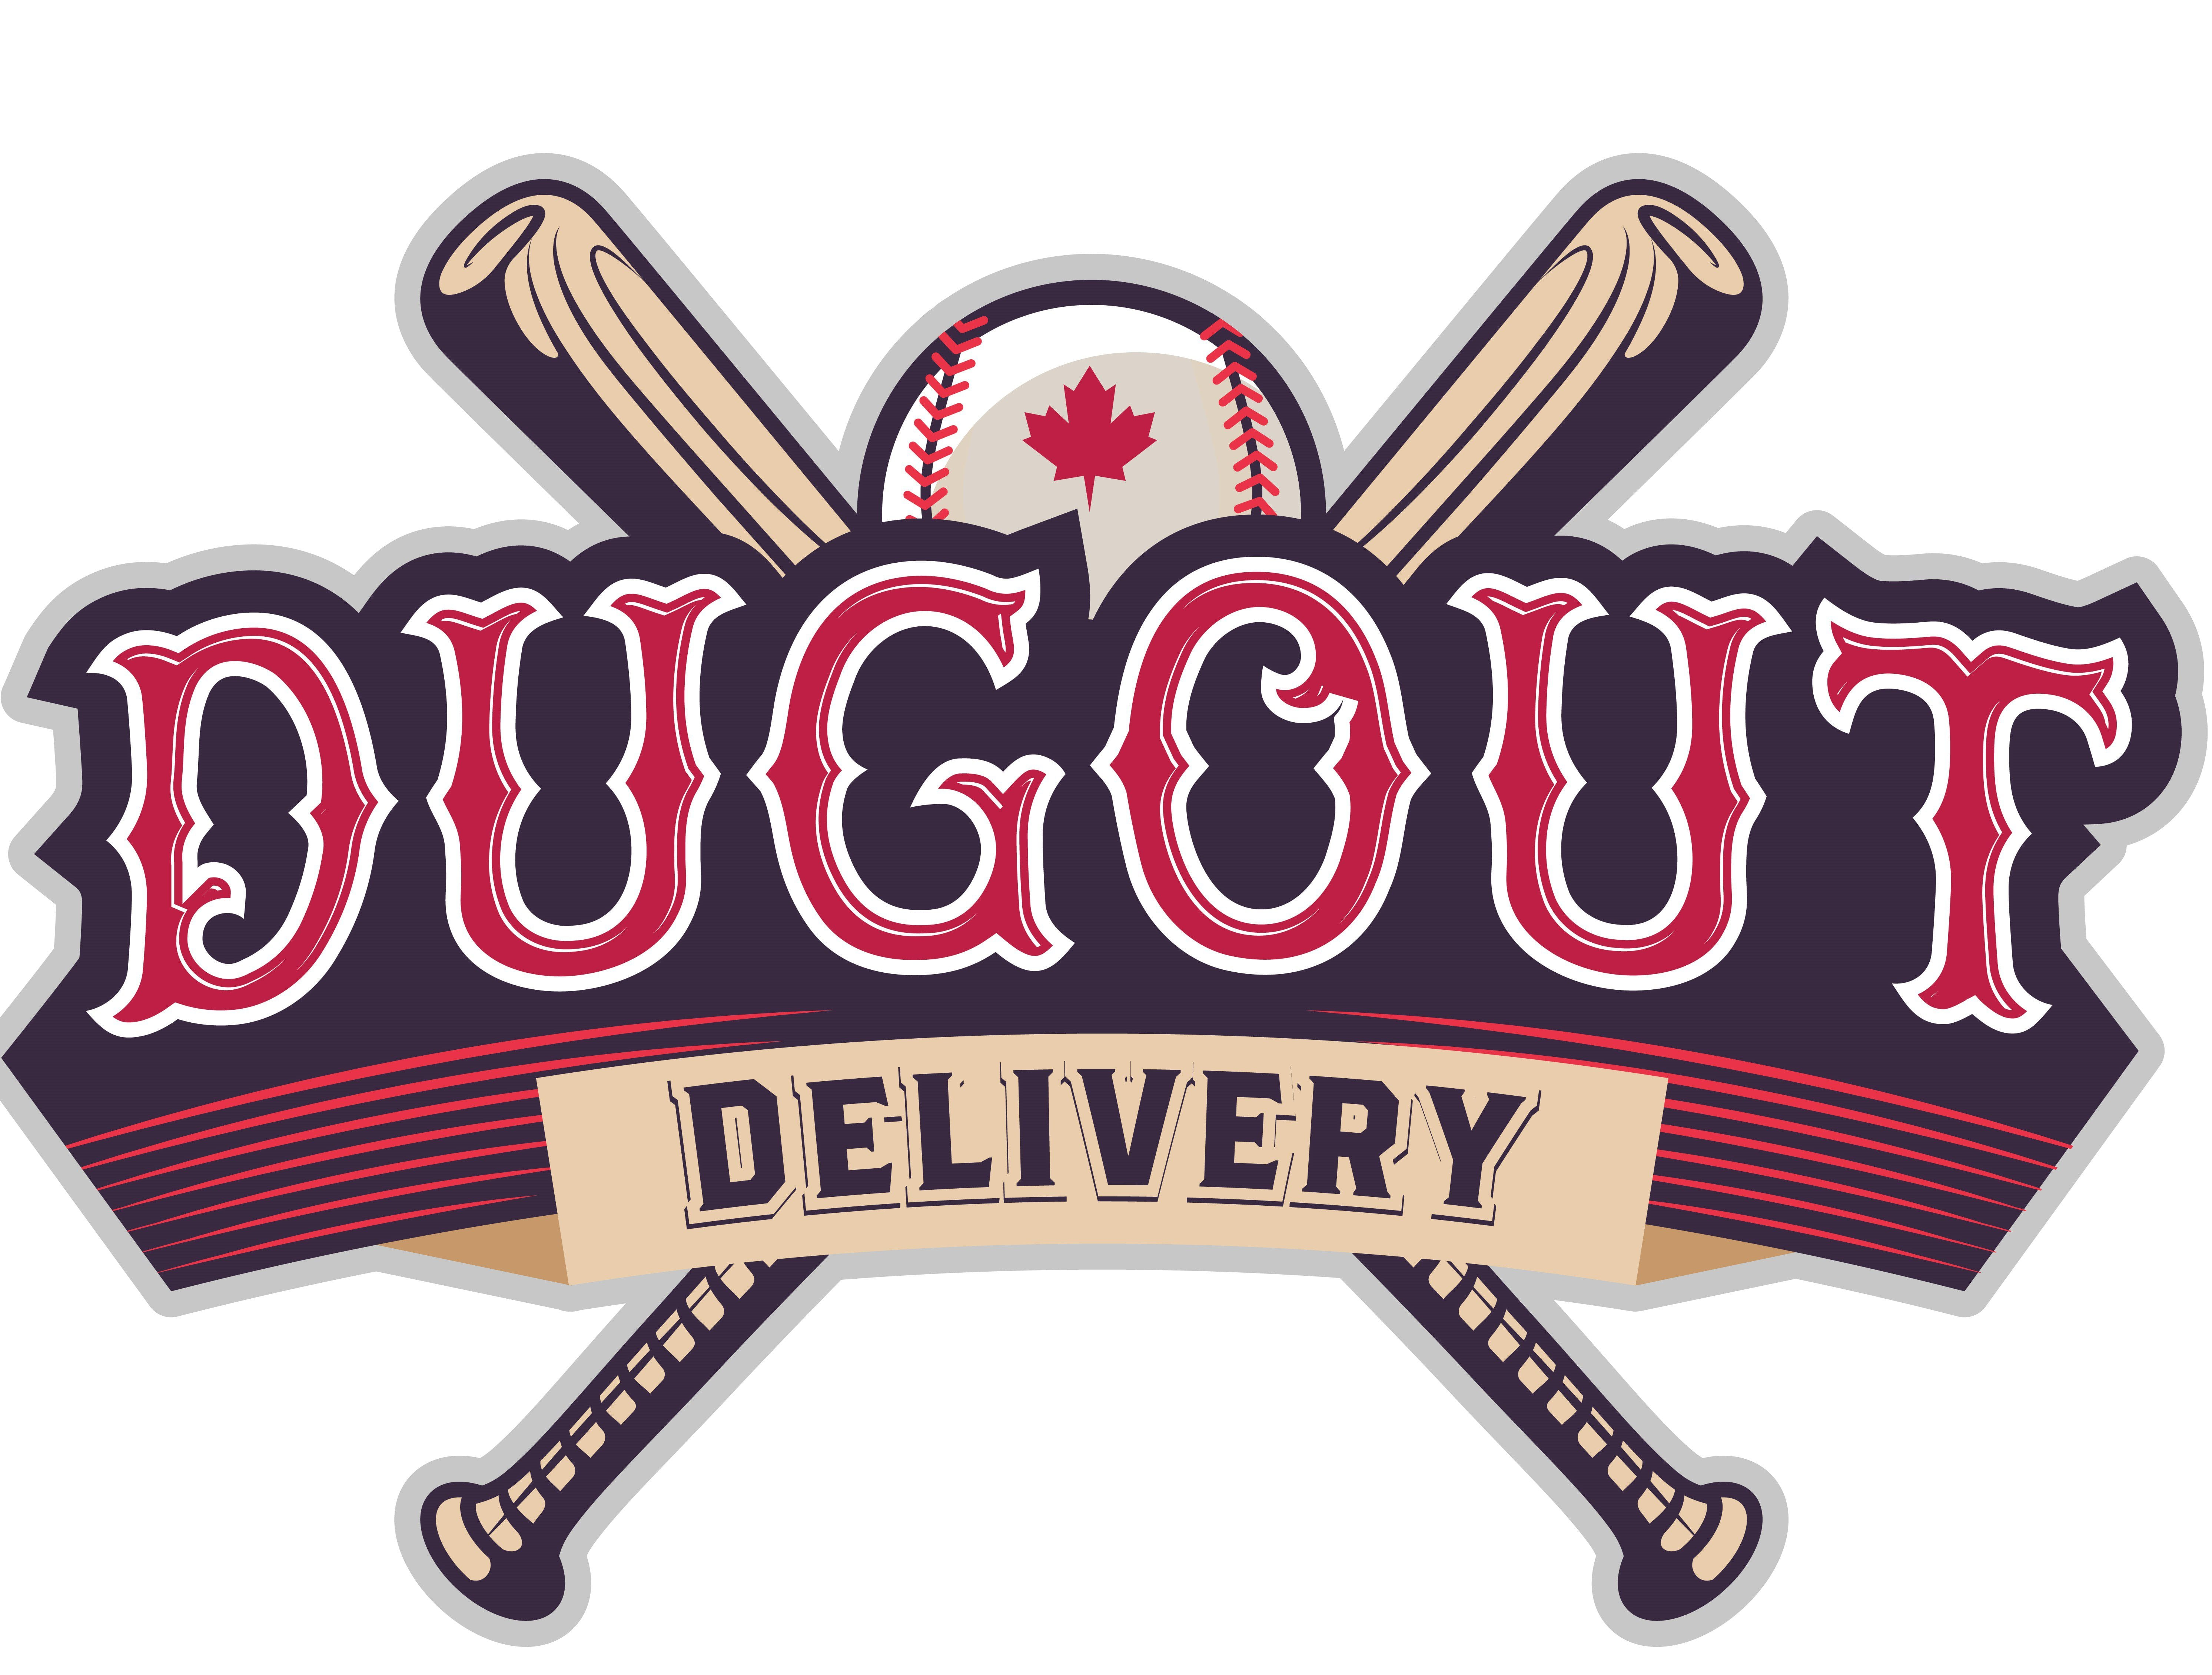 Dugout Delivery